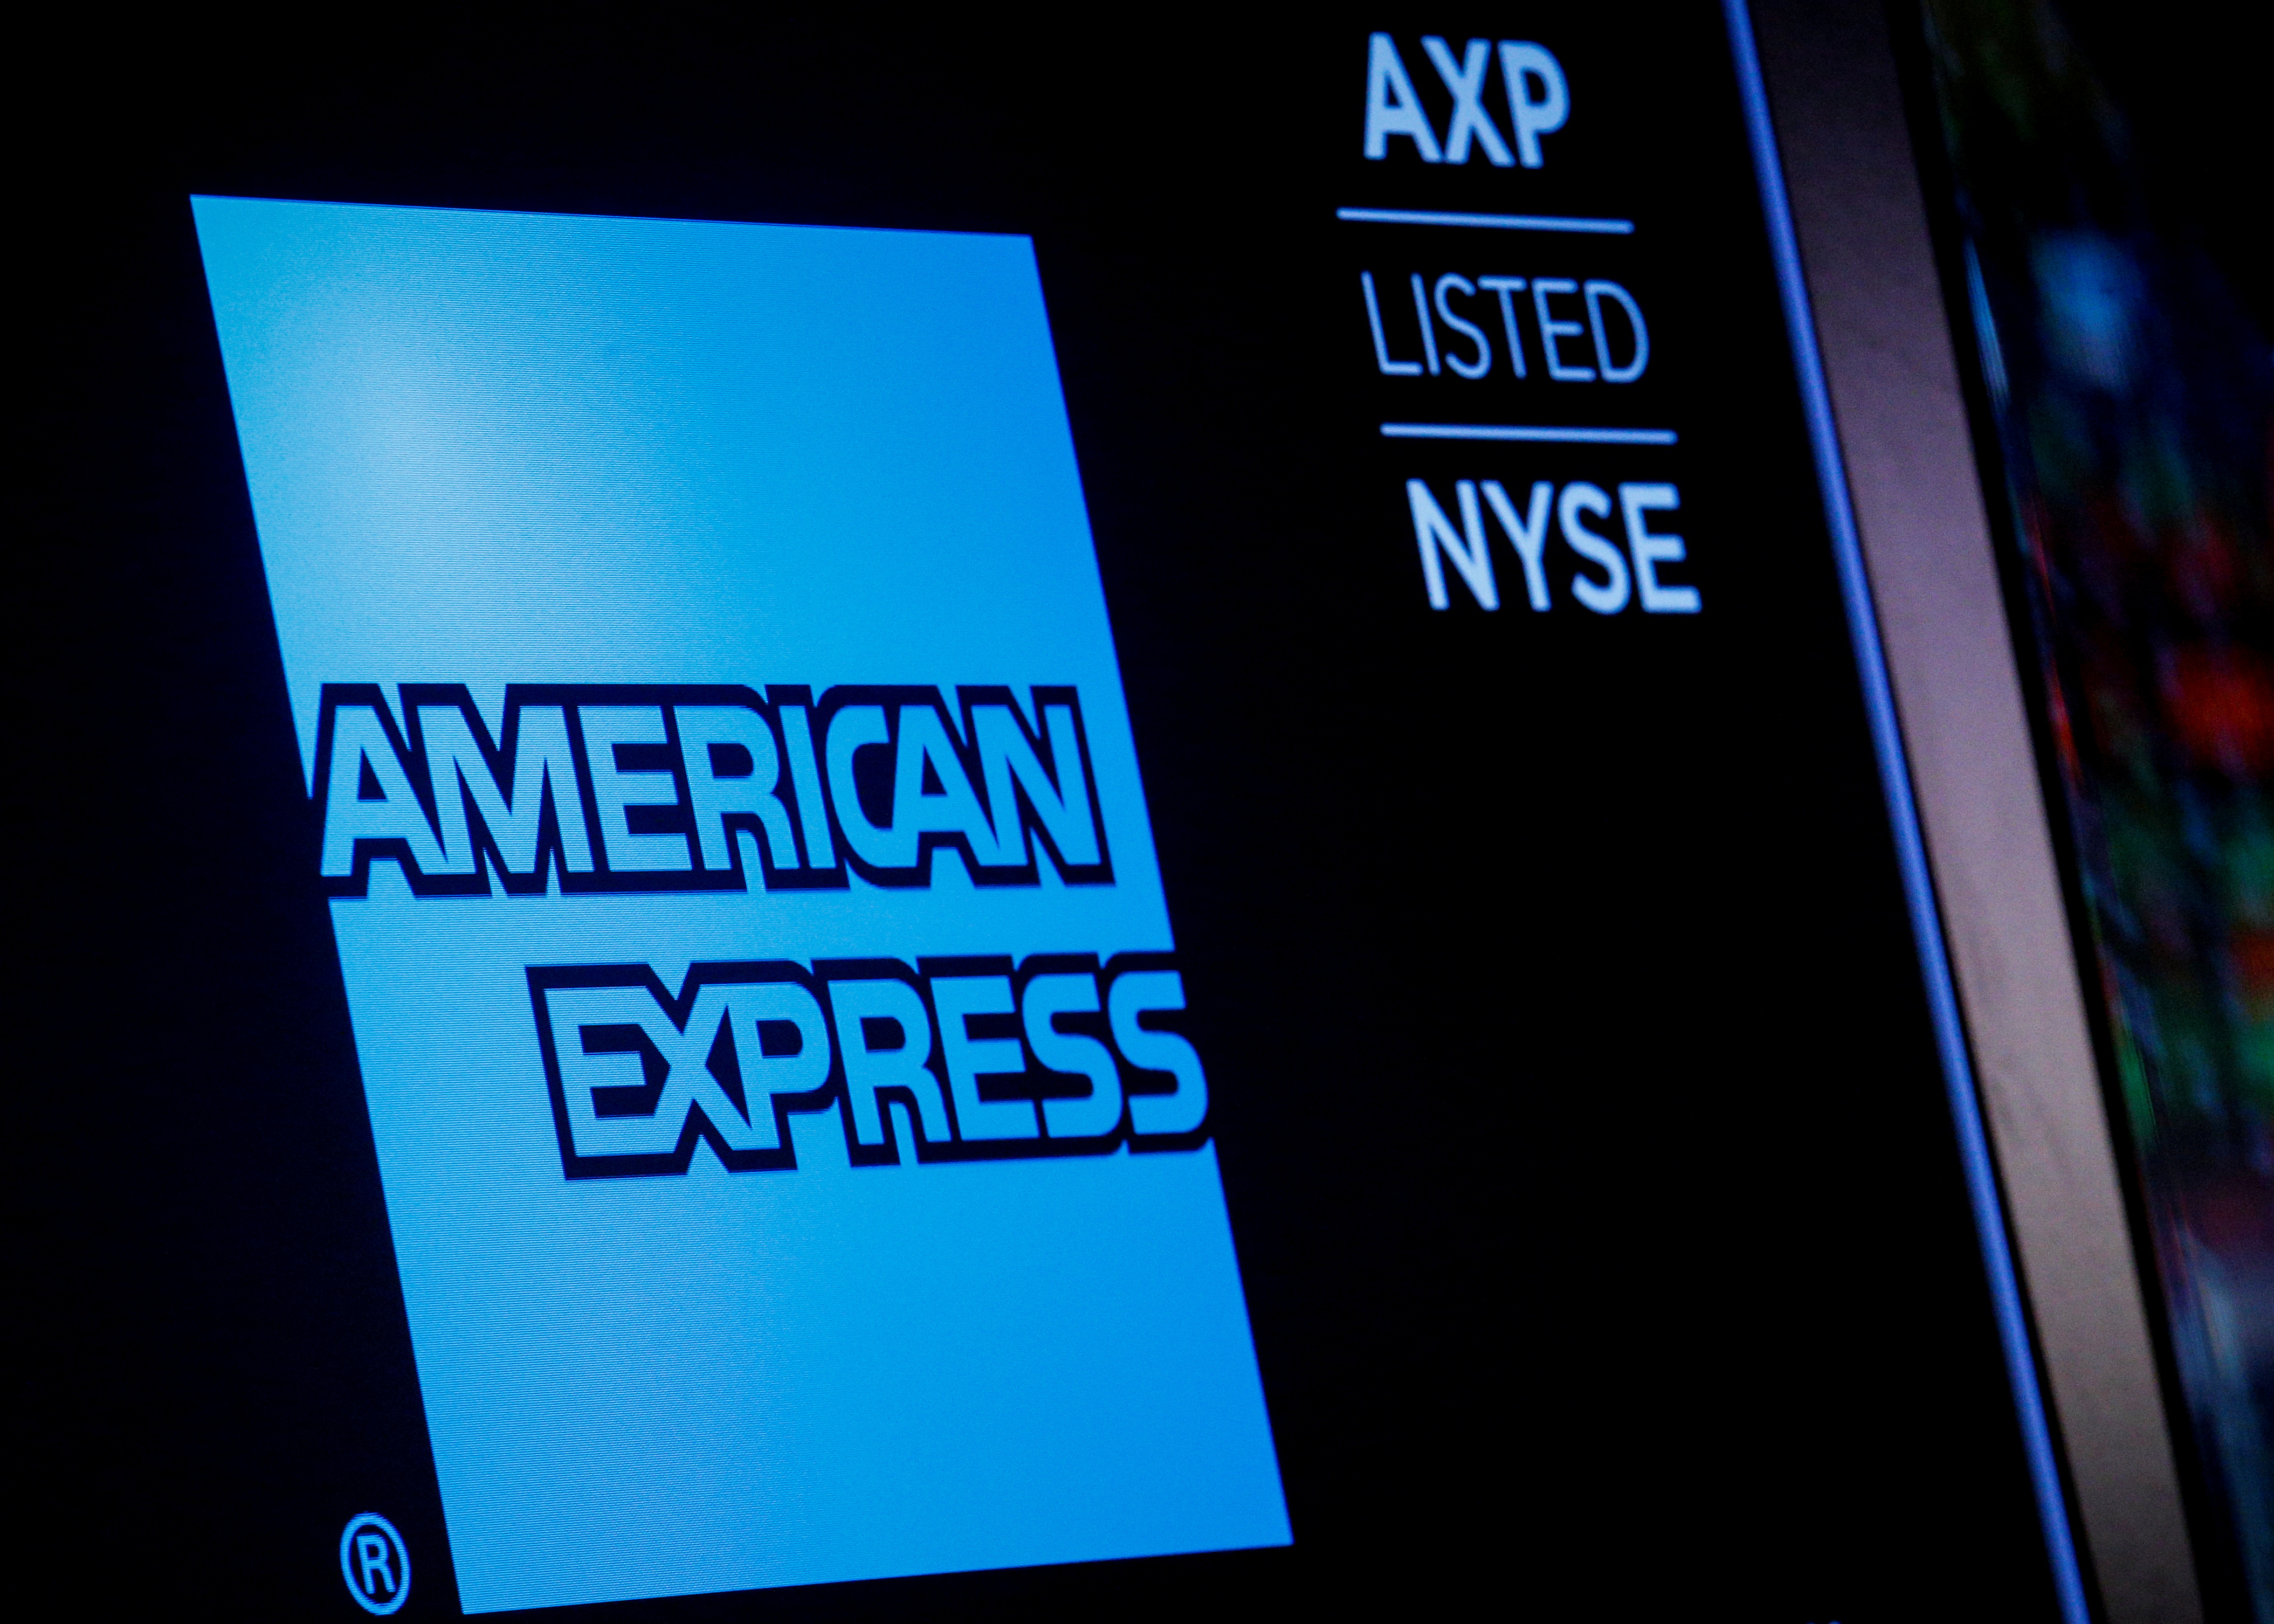 American Express logo and trading symbol are displayed on a screen at the New York Stock Exchange (NYSE) in New York, U.S., December 6, 2017. REUTERS/Brendan McDermid/File Photo